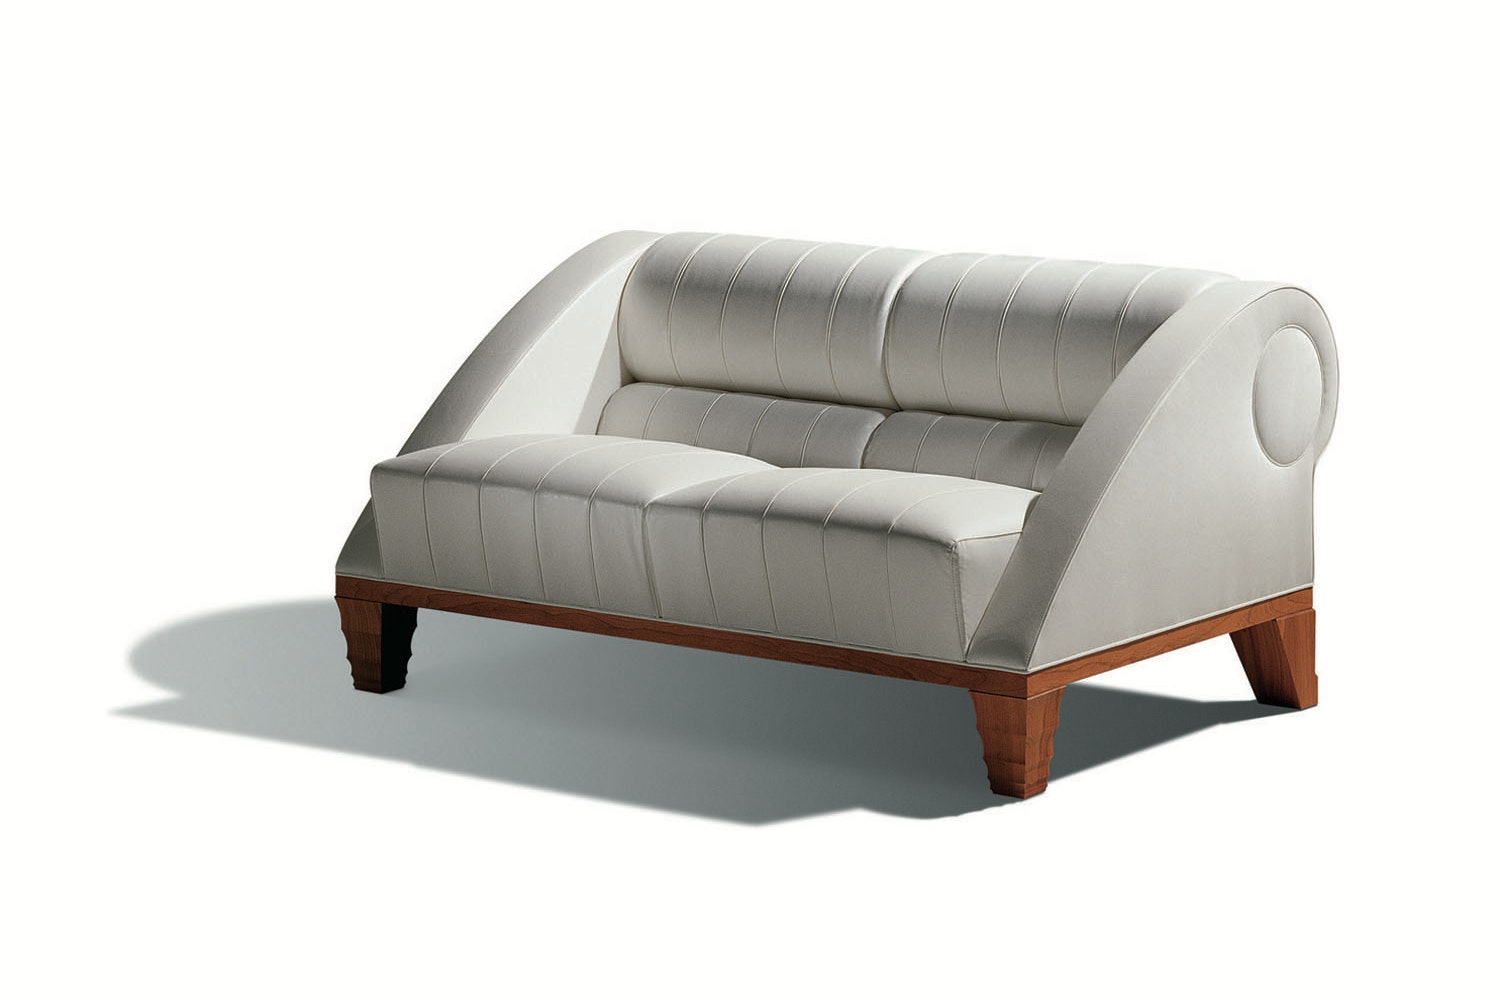 Aries Sofa by Leon Krier for Giorgetti